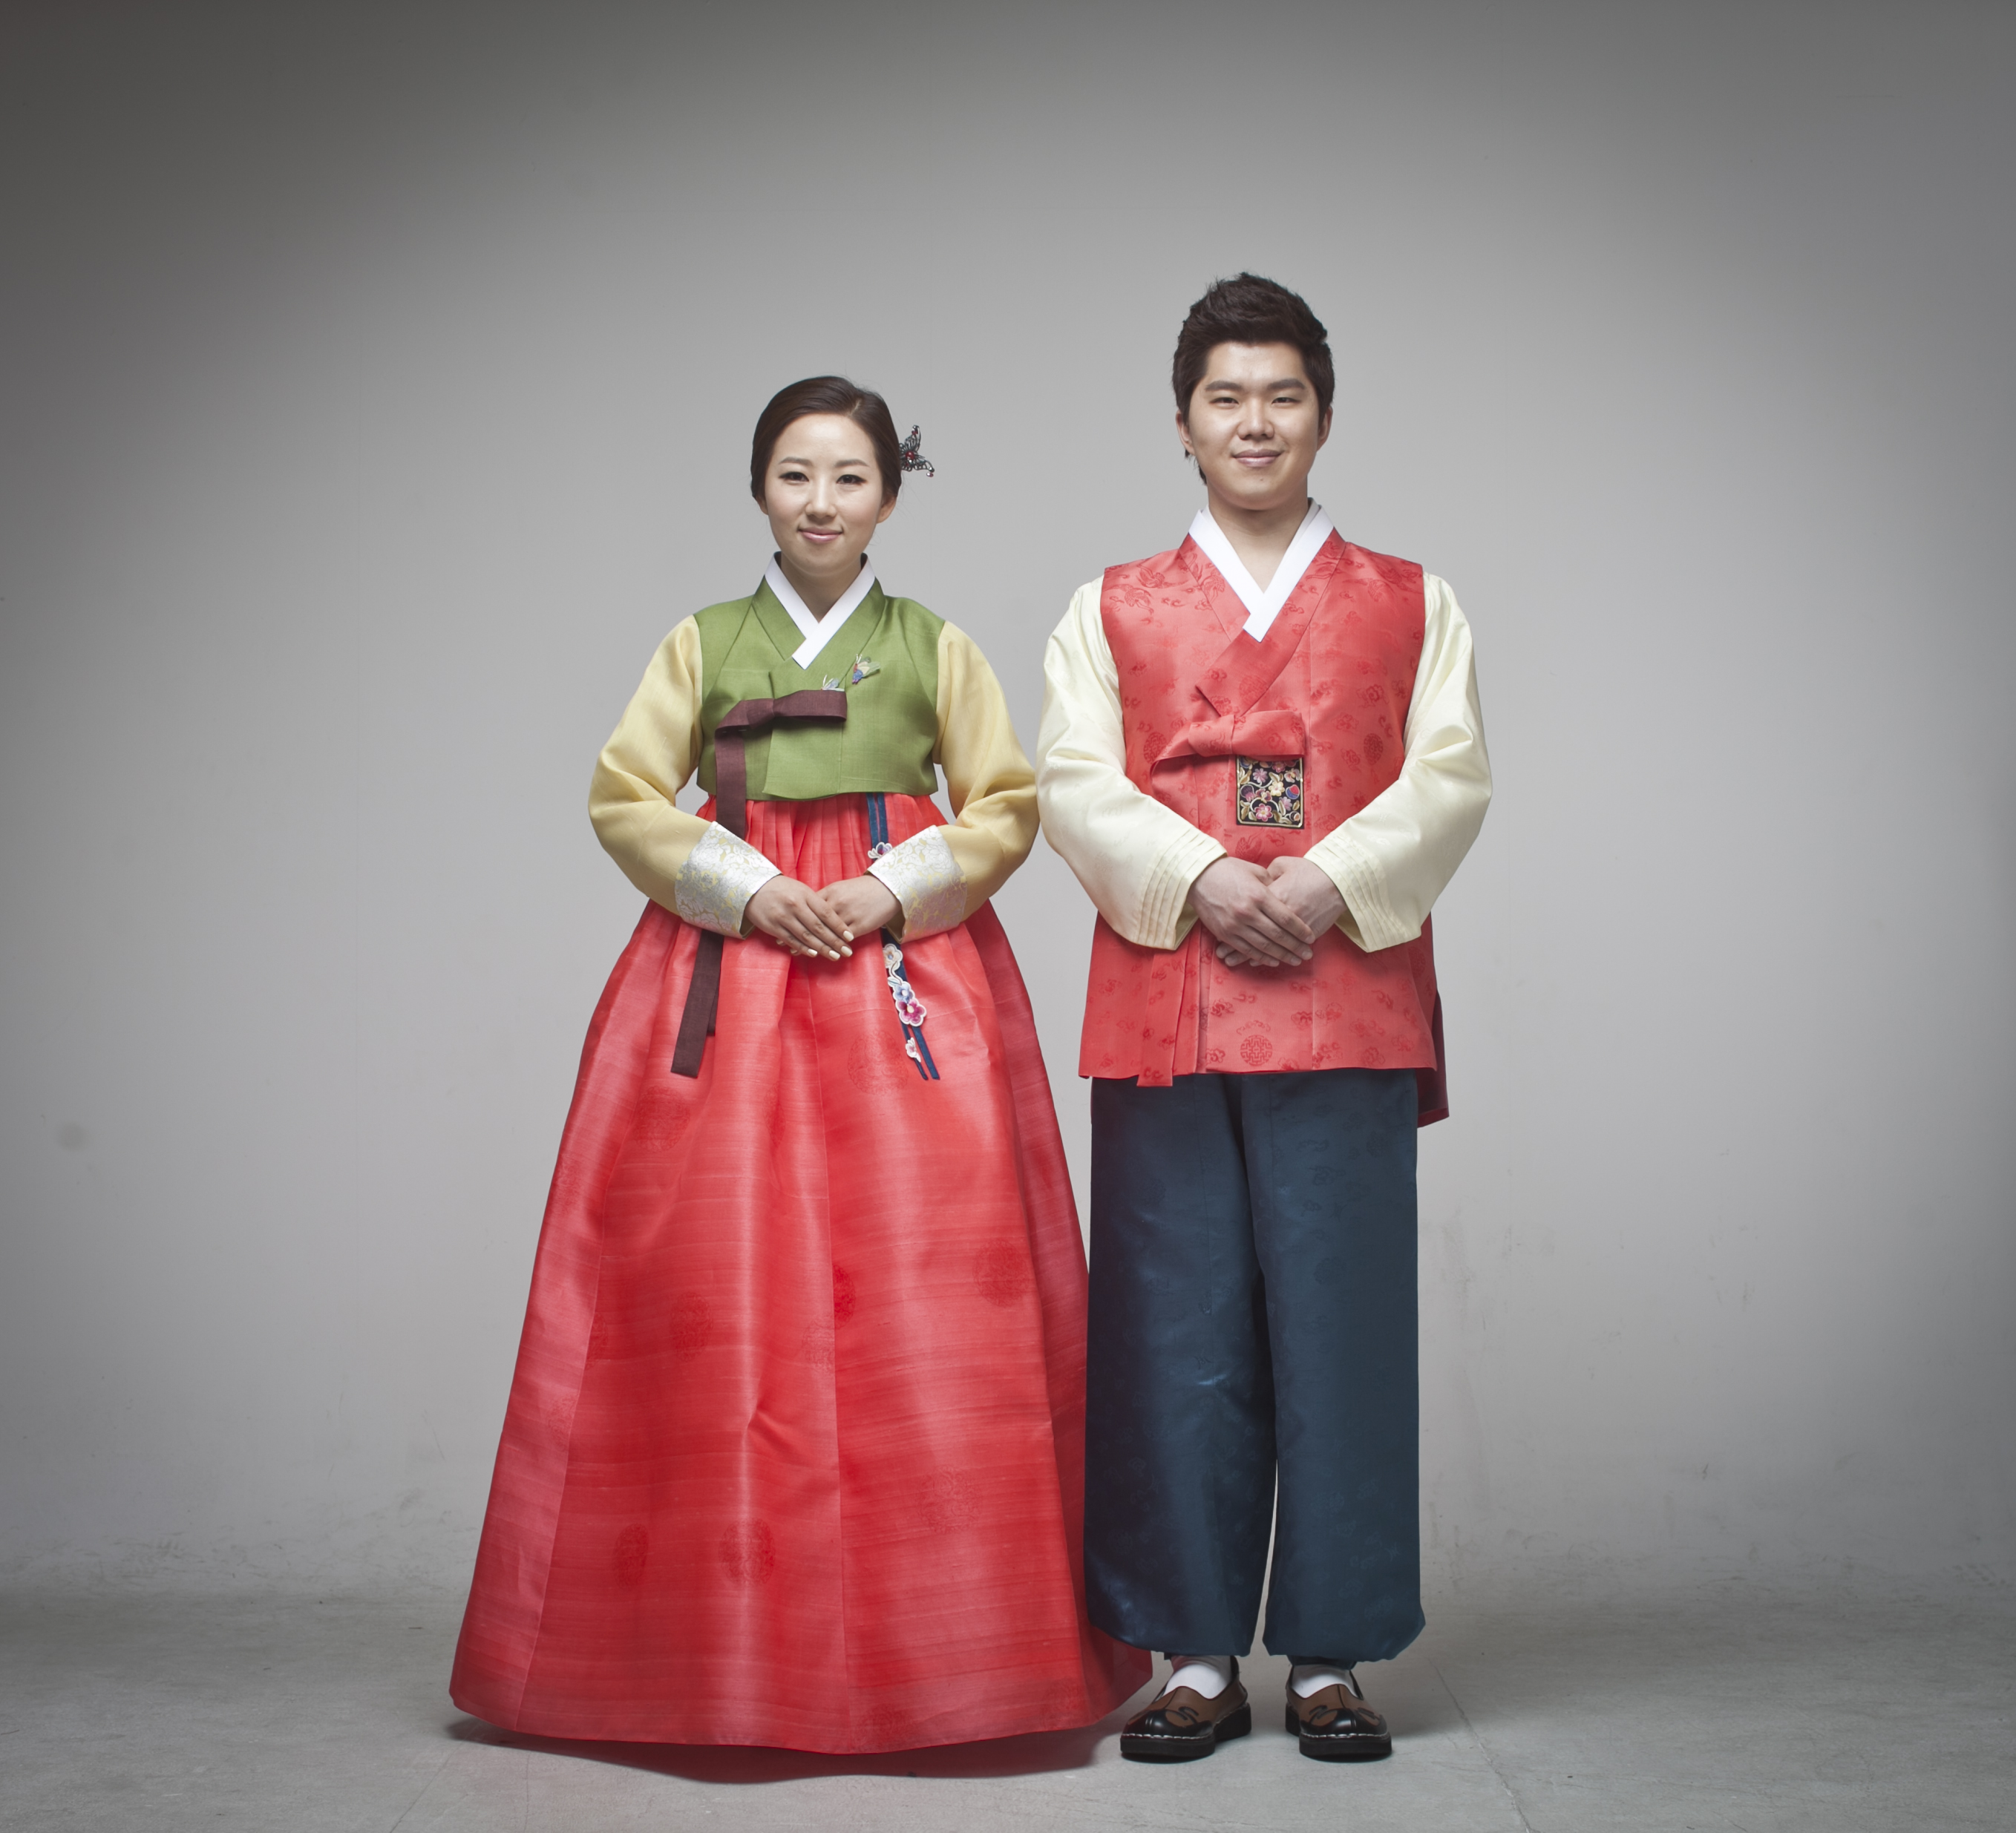 Parkerwiki0910 Kaylee S Korean Culture Page